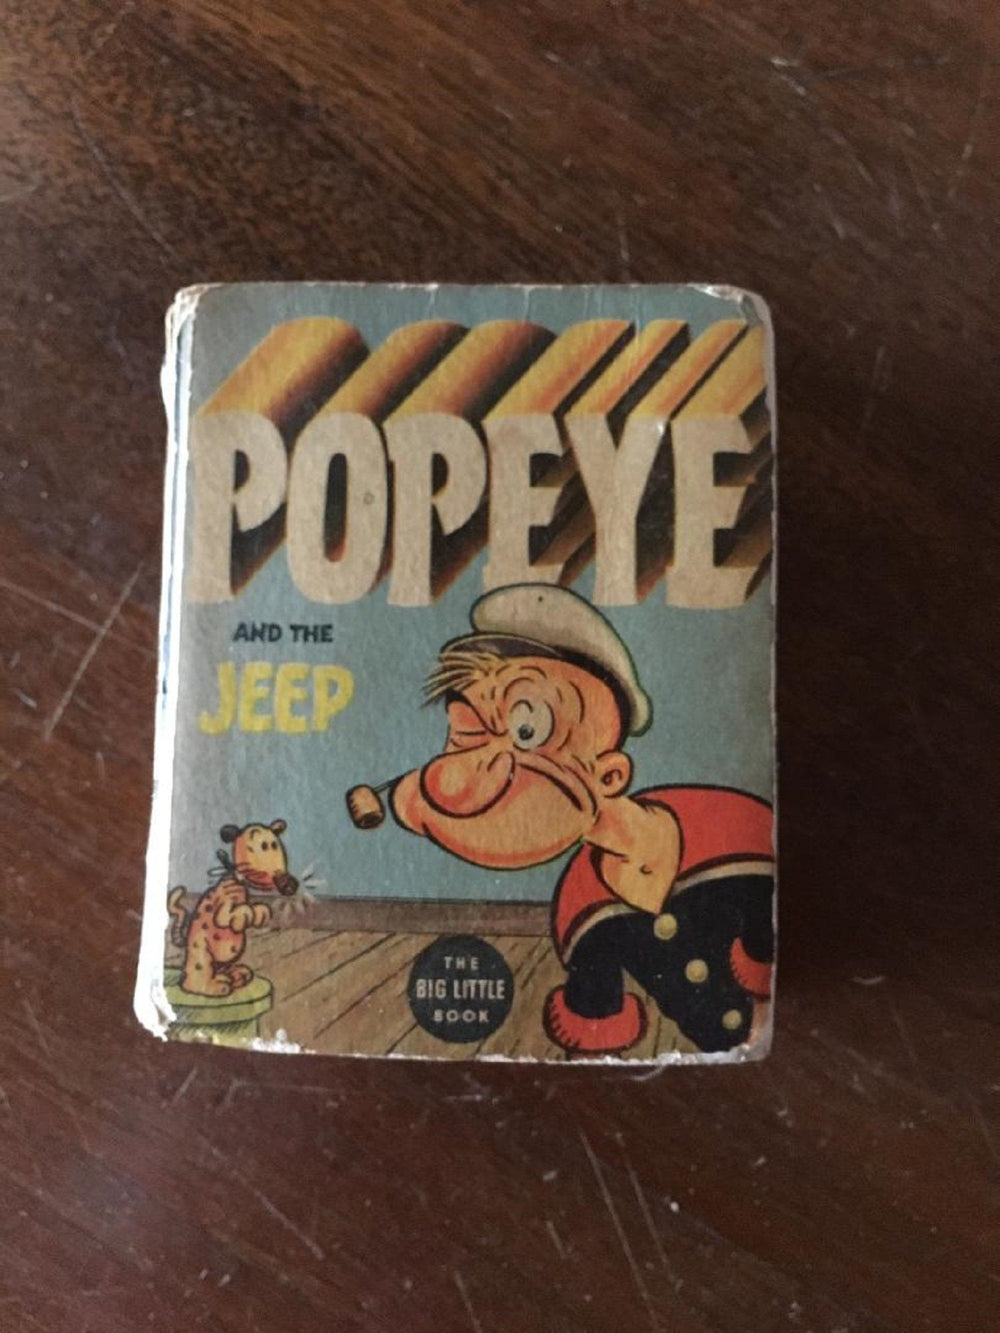 POPEYE and the JEEP (1937) Better Little Book (Whitman)